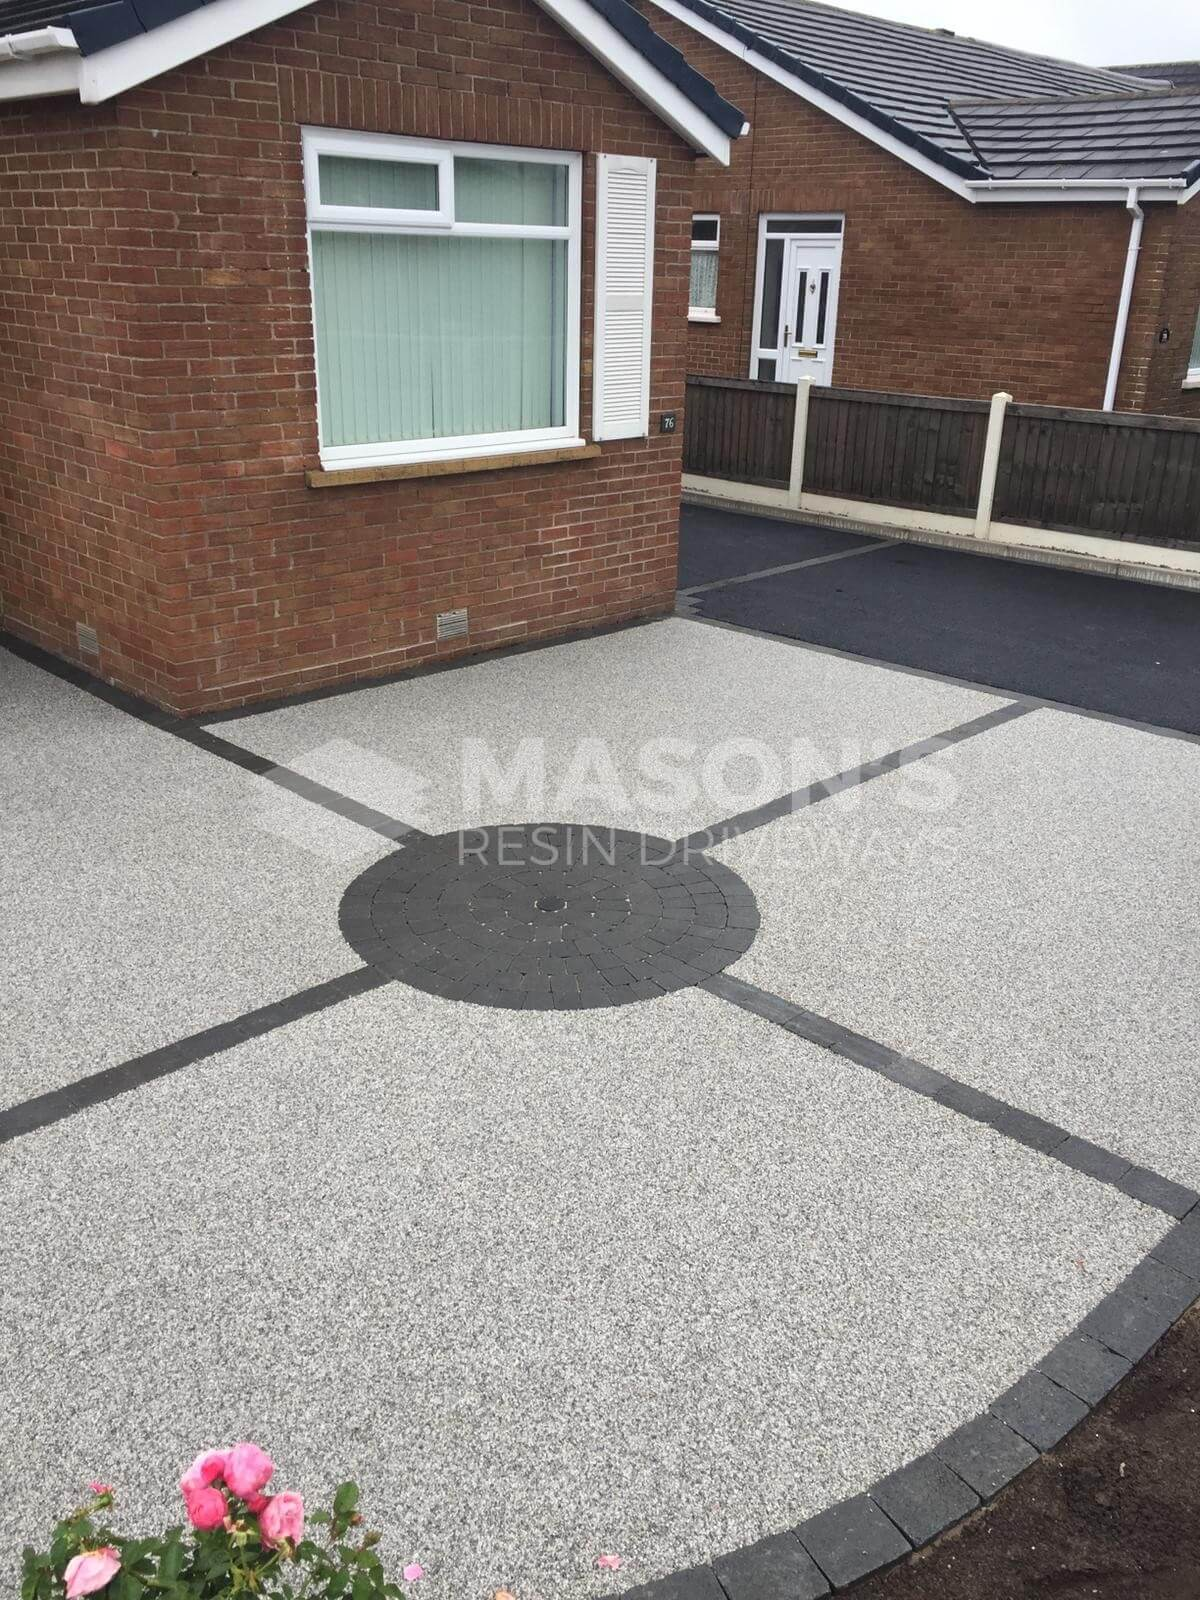 View of the Silver Quartz used on Resin Driveway, Preston, Lancashire